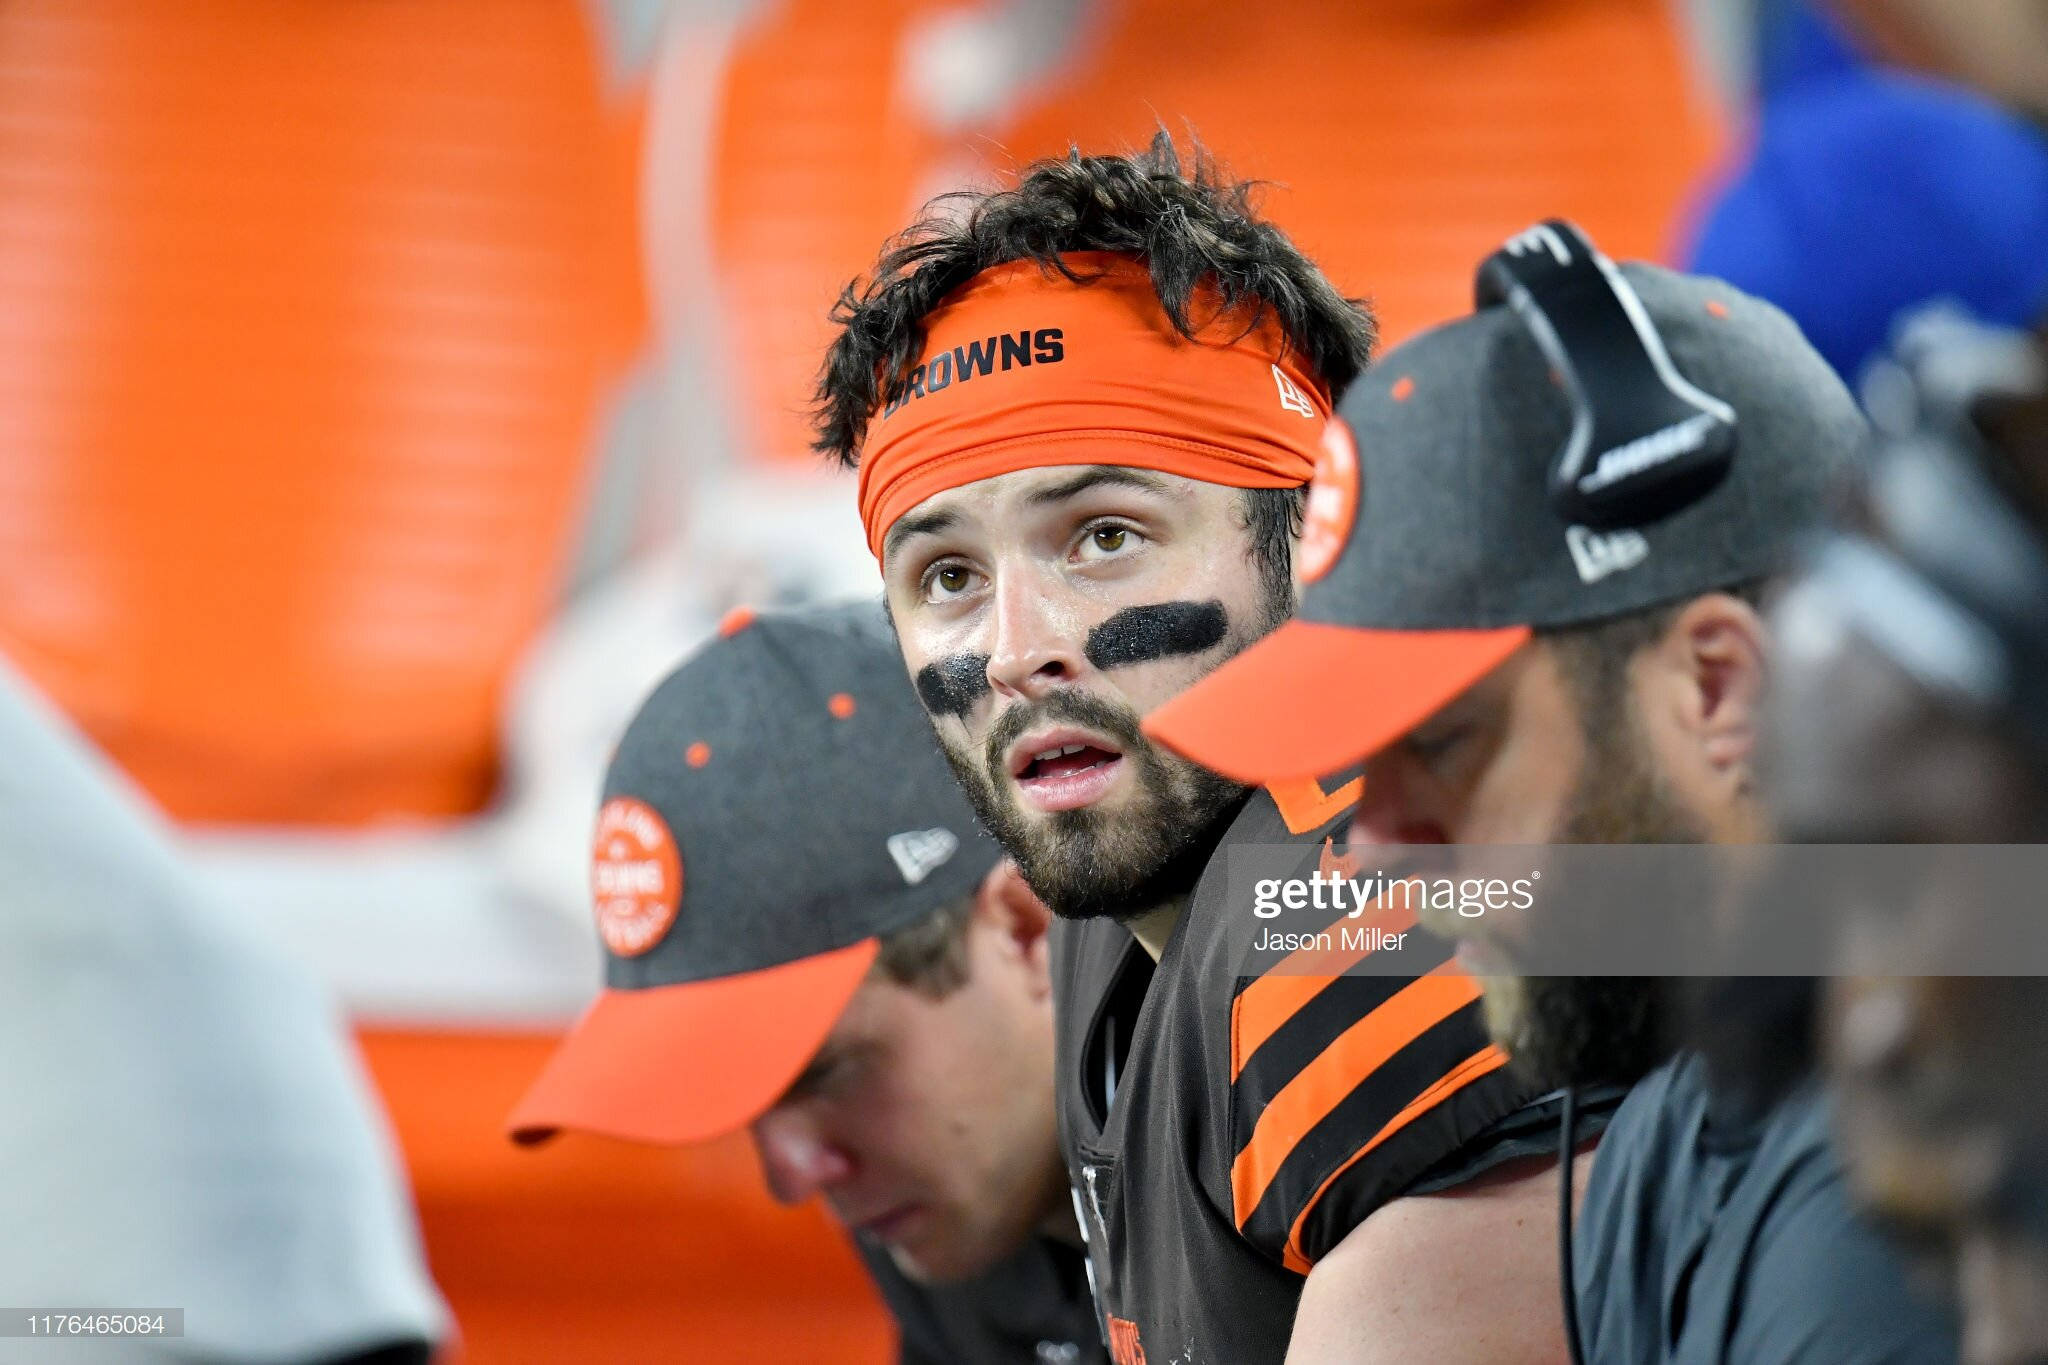 Baker Mayfield on the bench after a quick drive.